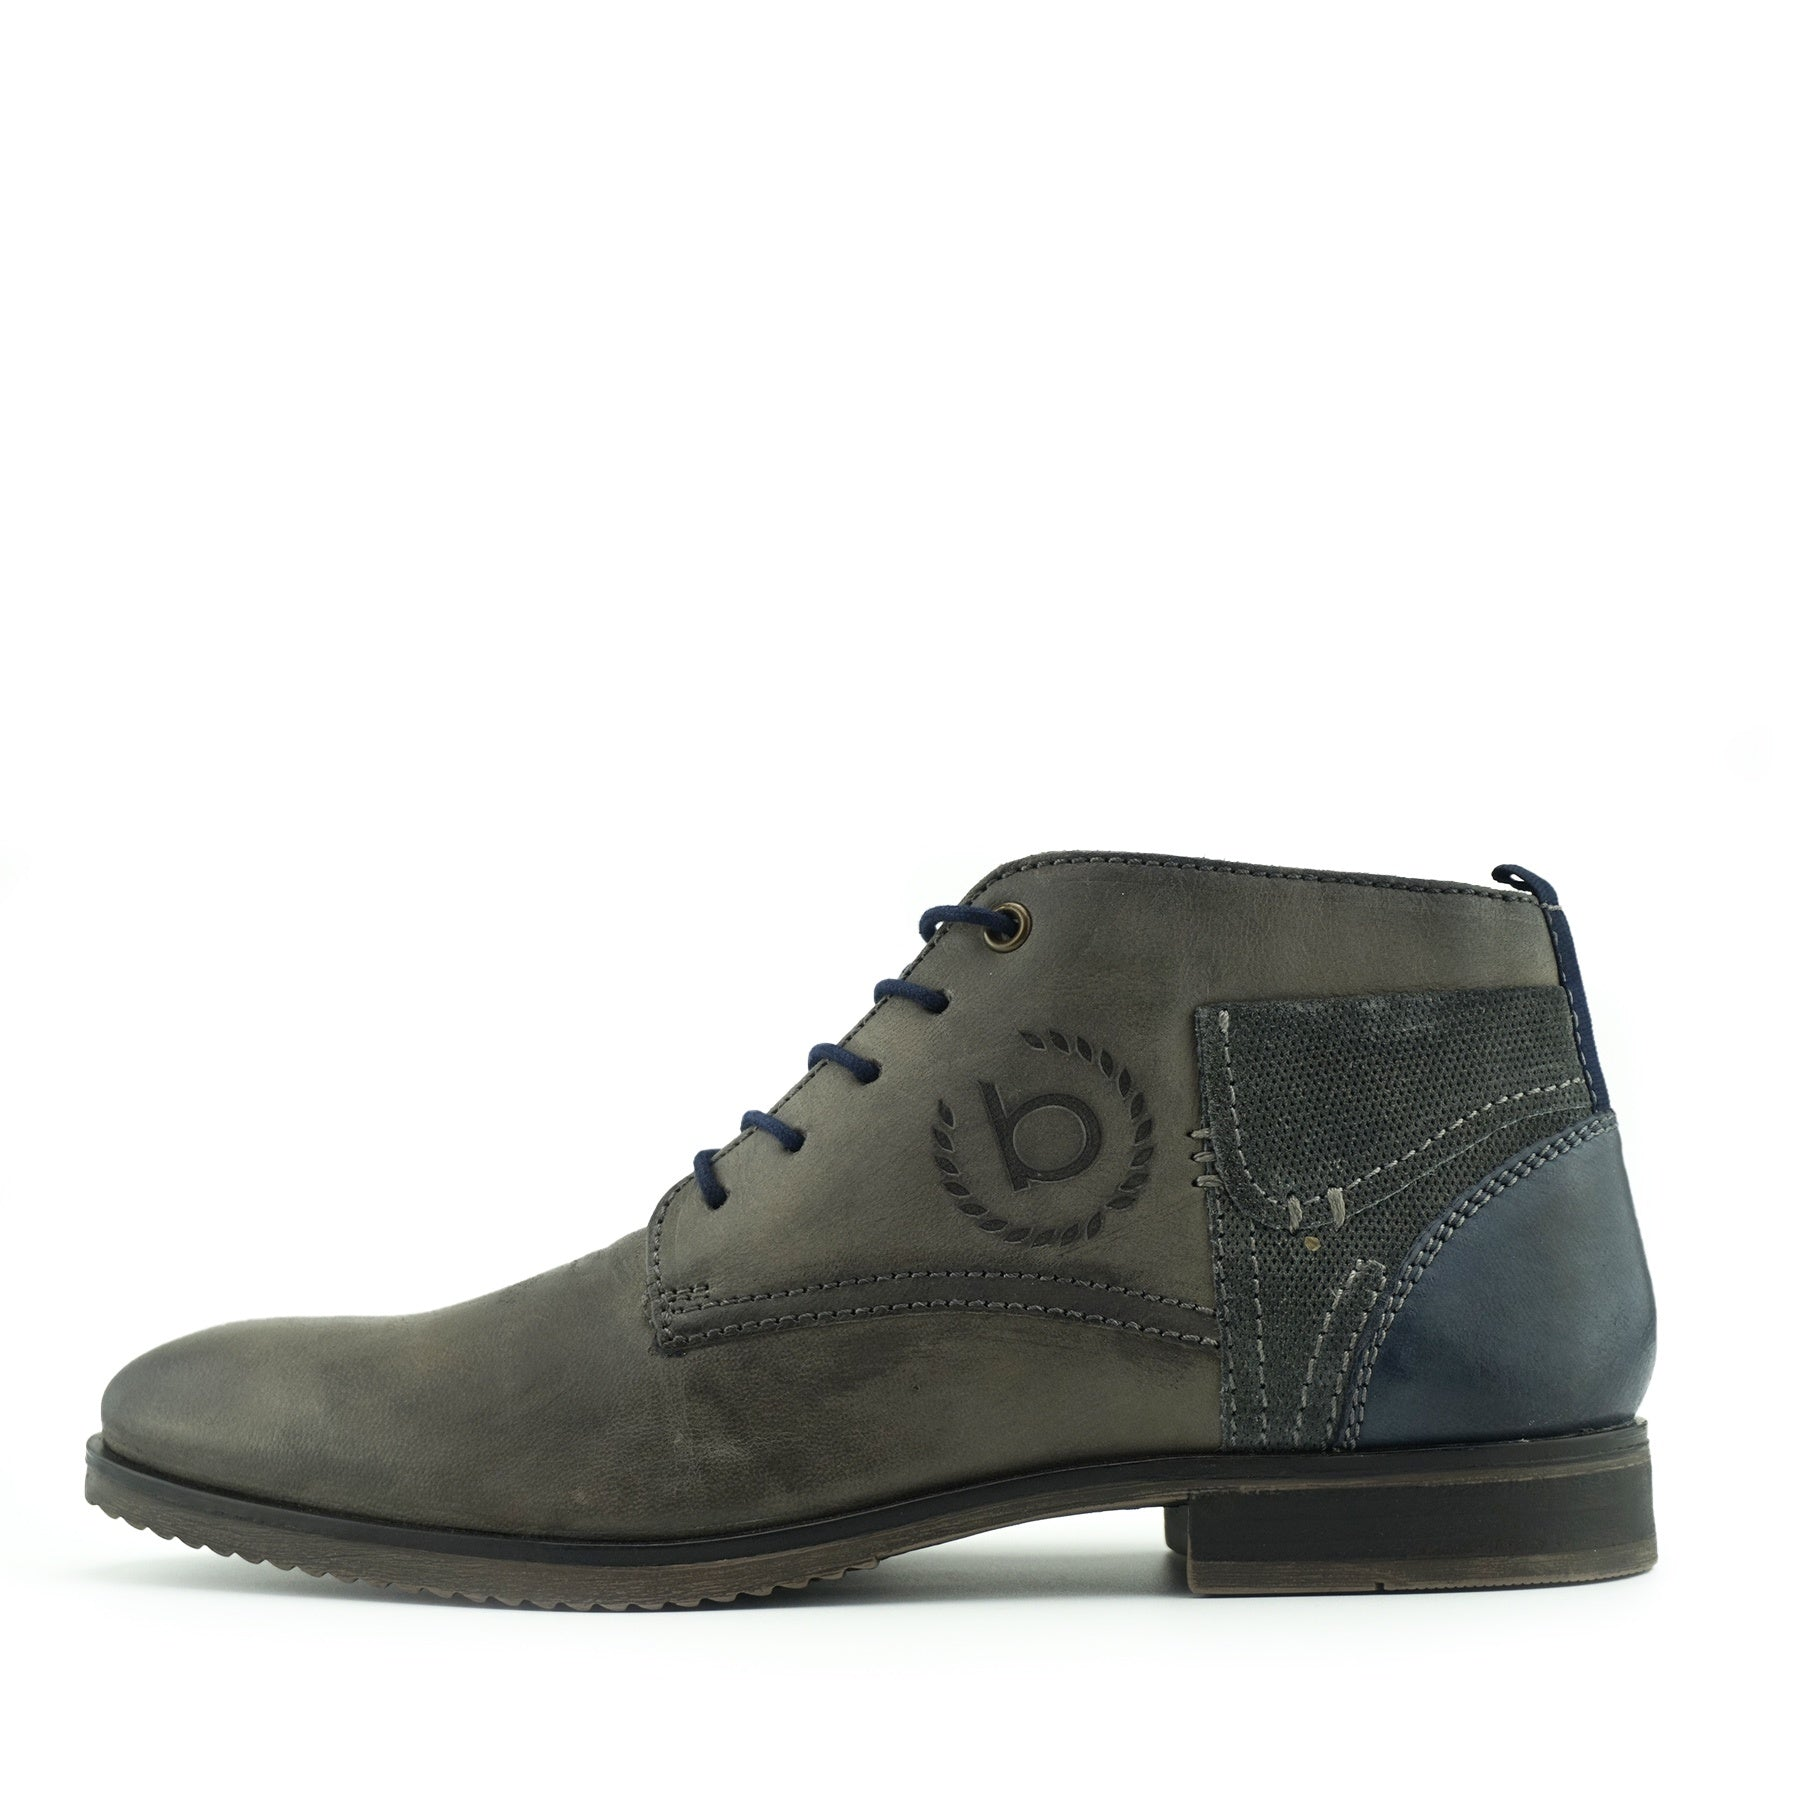 8b7d078220344 ... Bugatti Premium Leather Lace Up Contrast Boots - Grey. mens leather  shoes size 13